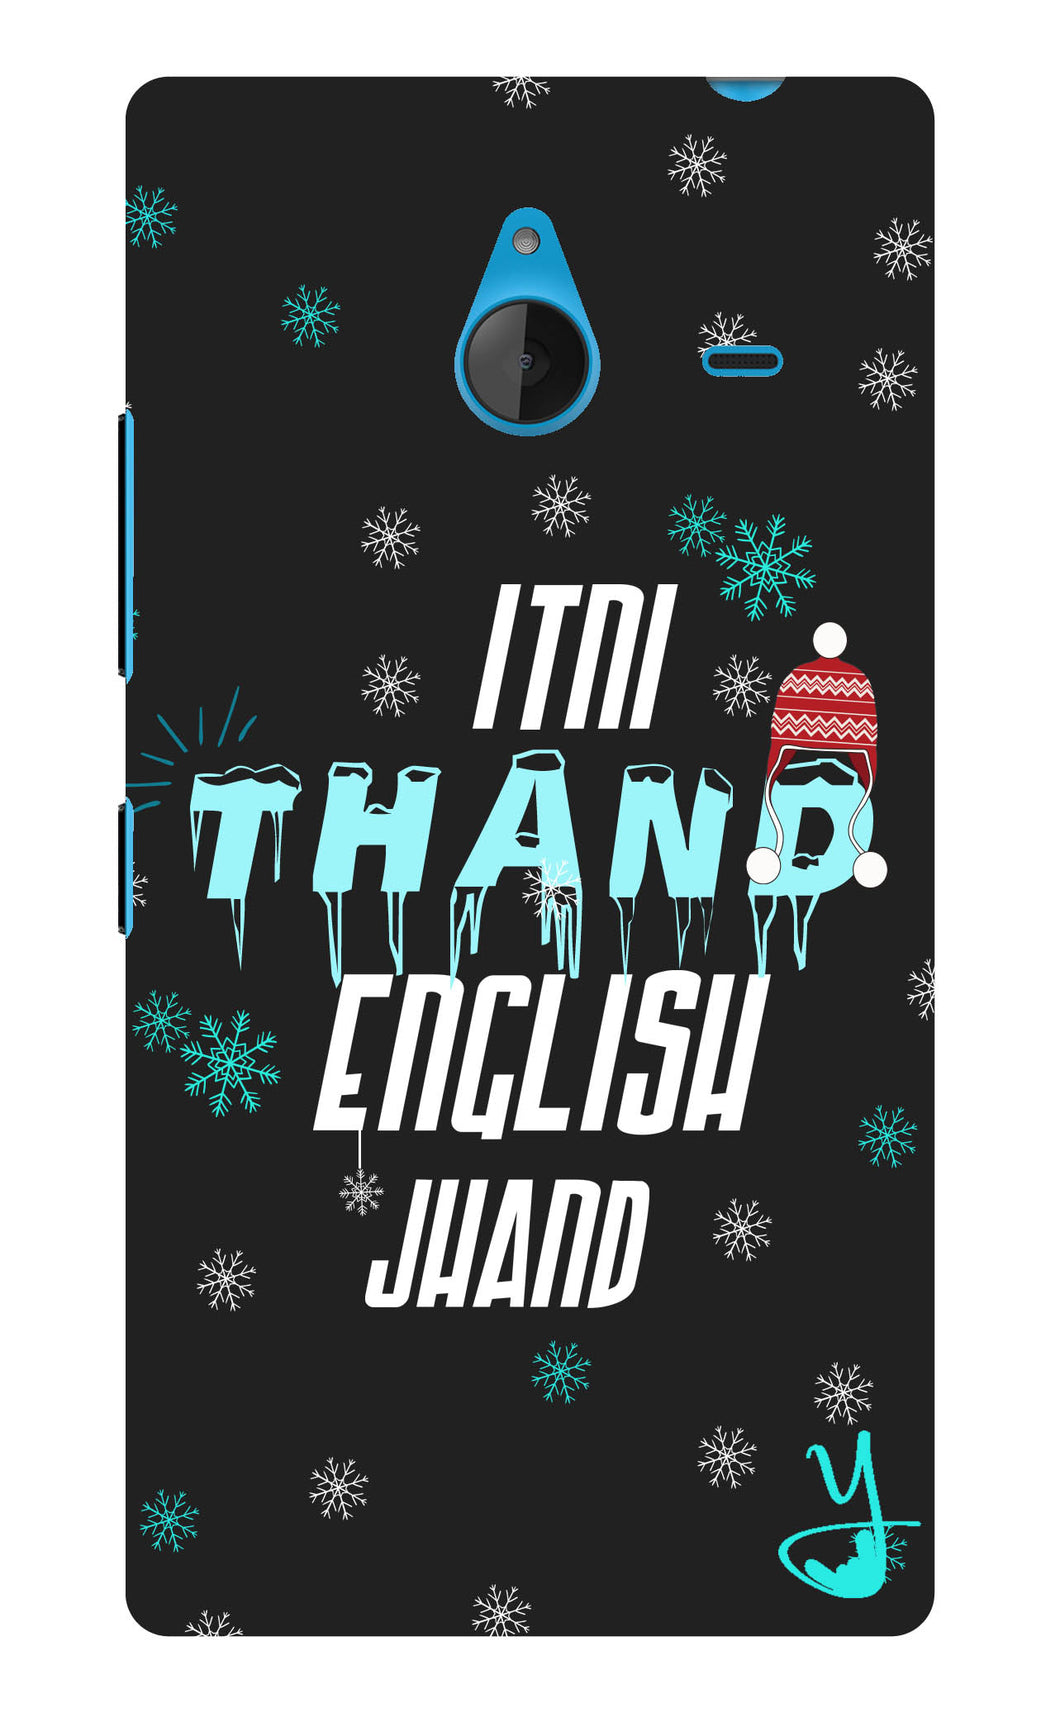 Itni Thand edition for Microsoft Lumia 640xl